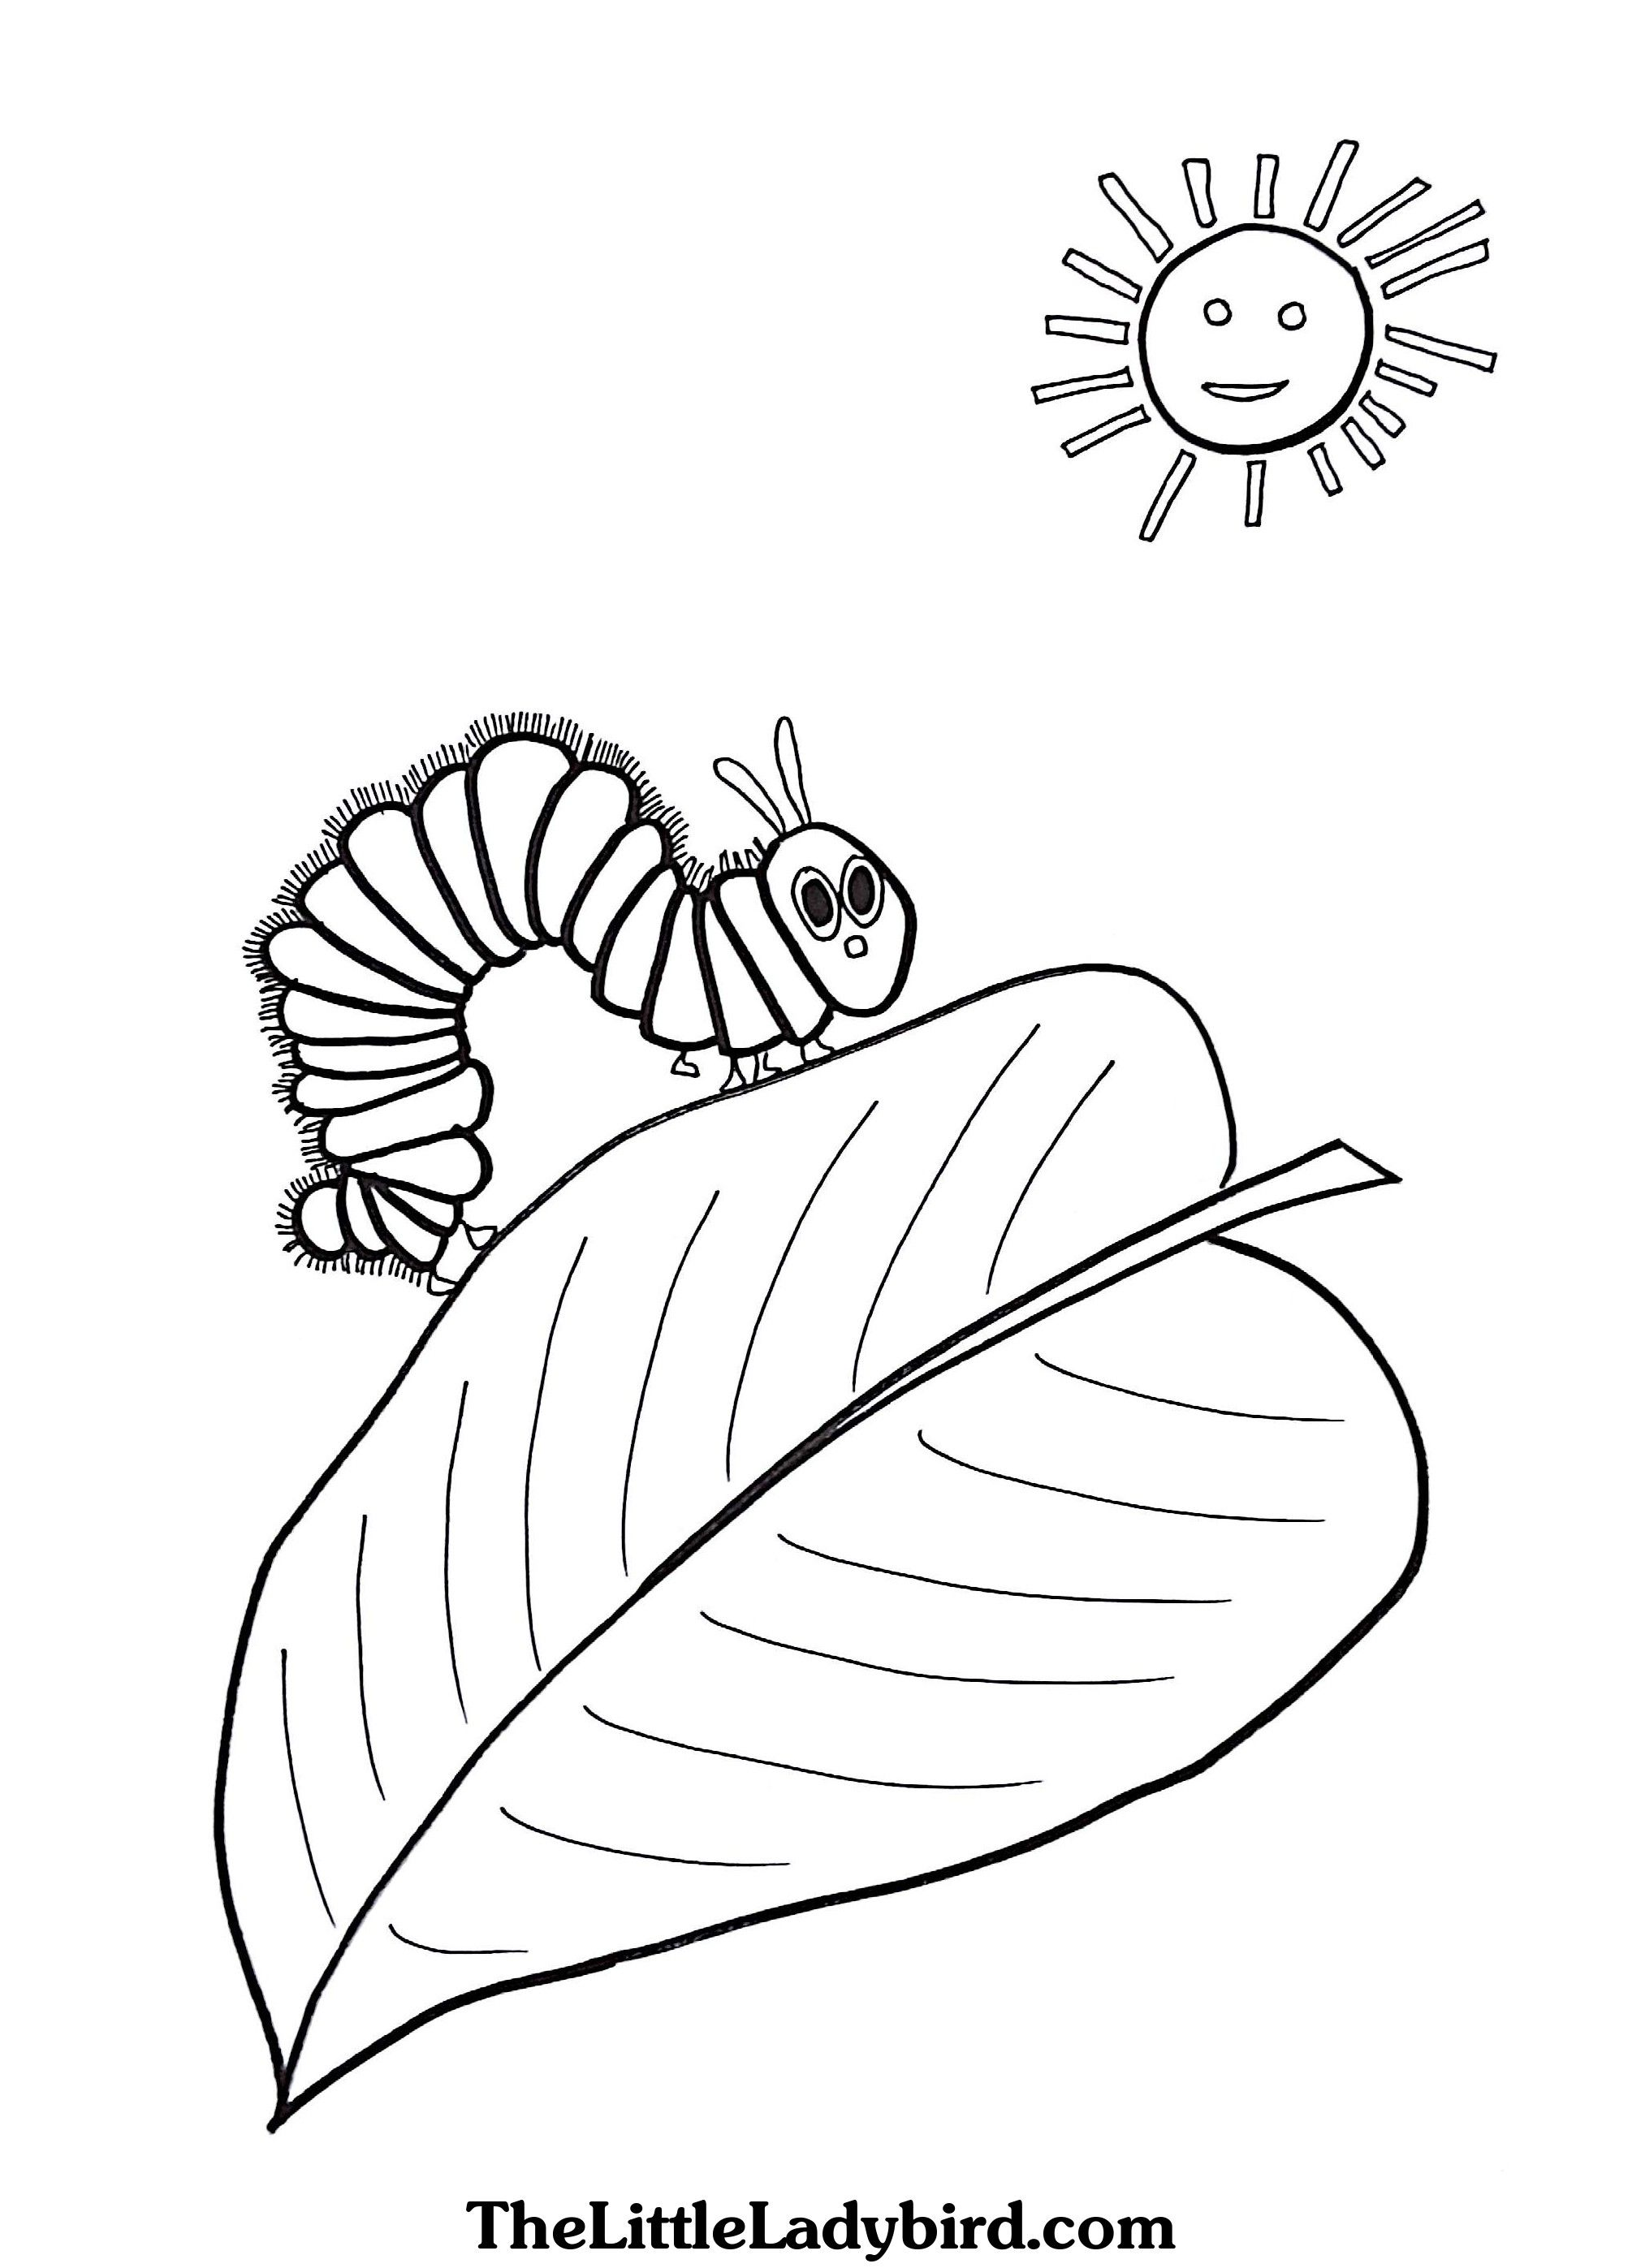 very hungry caterpillar coloring very hungry caterpillar coloring page coloring page base hungry caterpillar coloring very